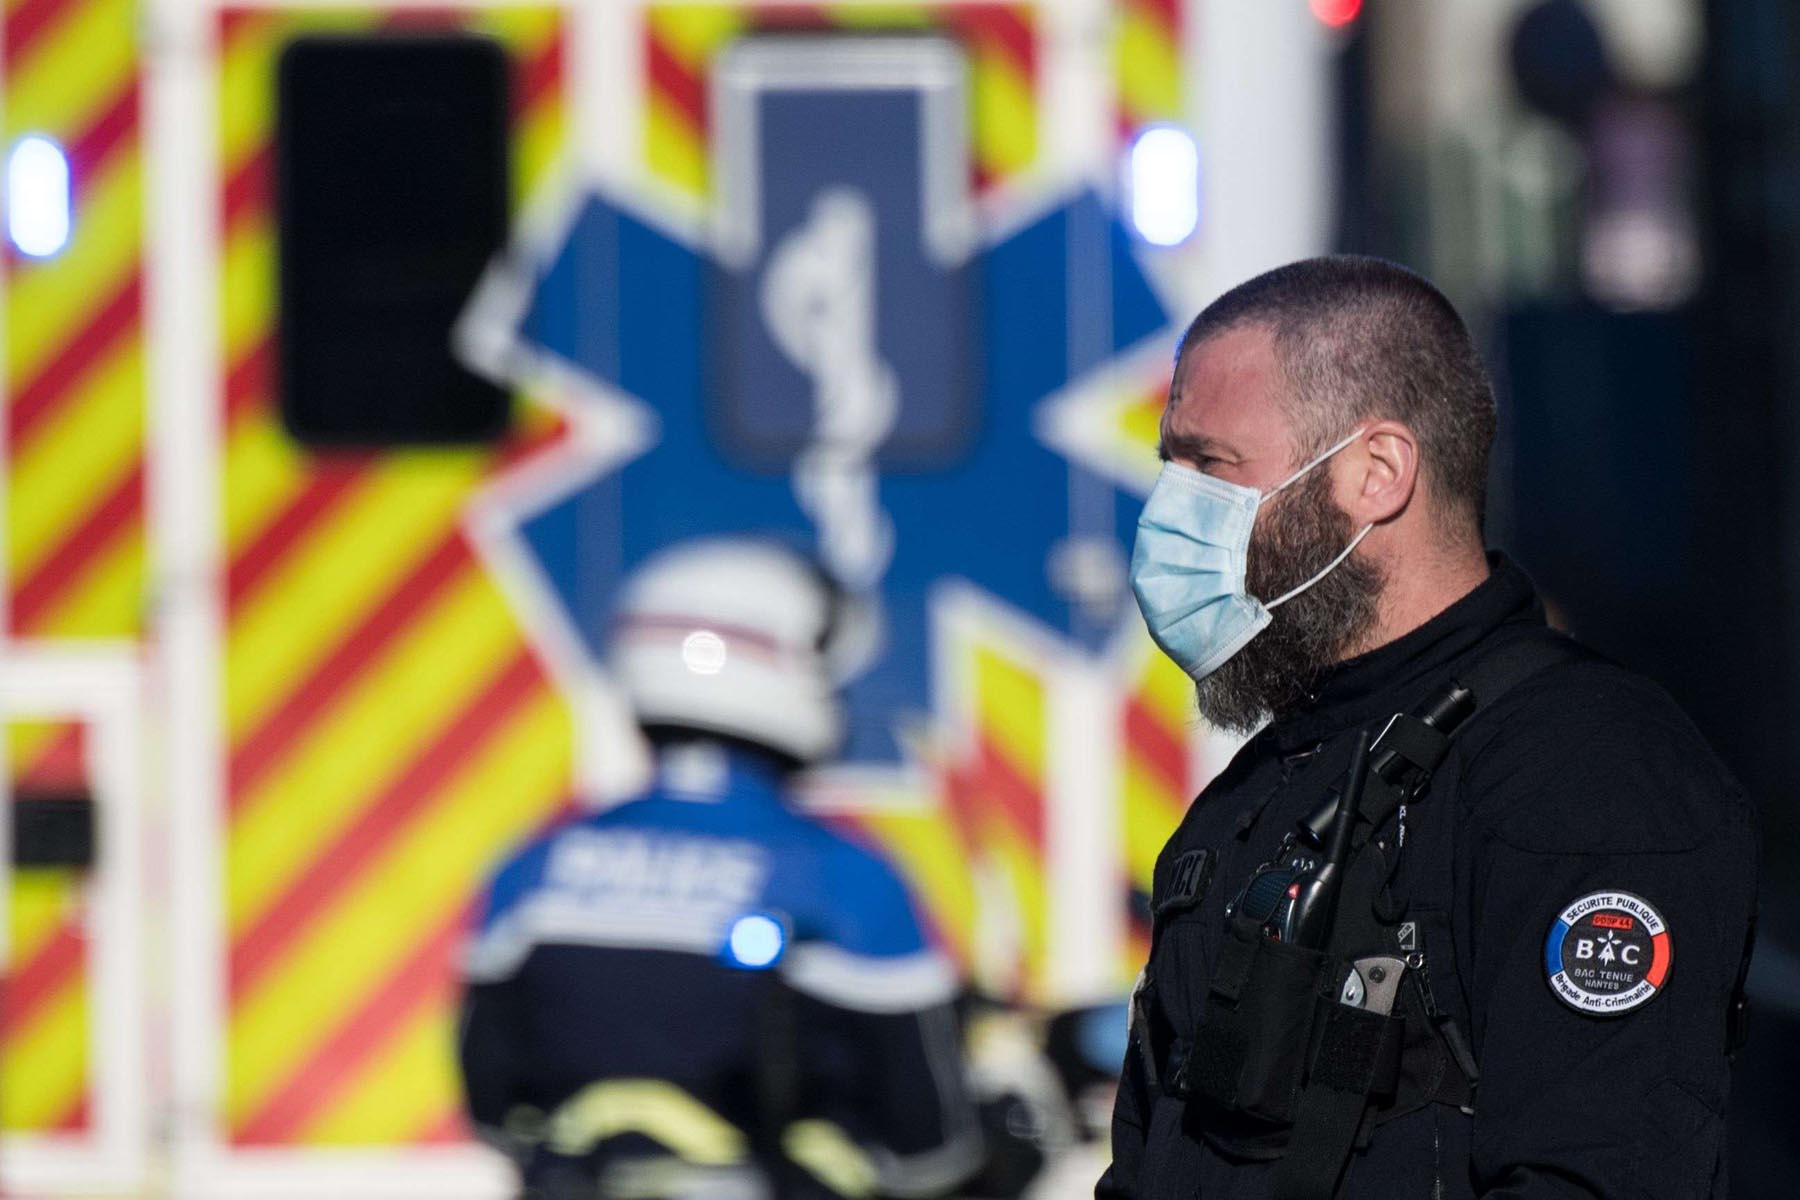 Police officers escort an ambulance arriving to take care of patients infected with the covid-19 disease, on March 26 in Nantes. (AFP)